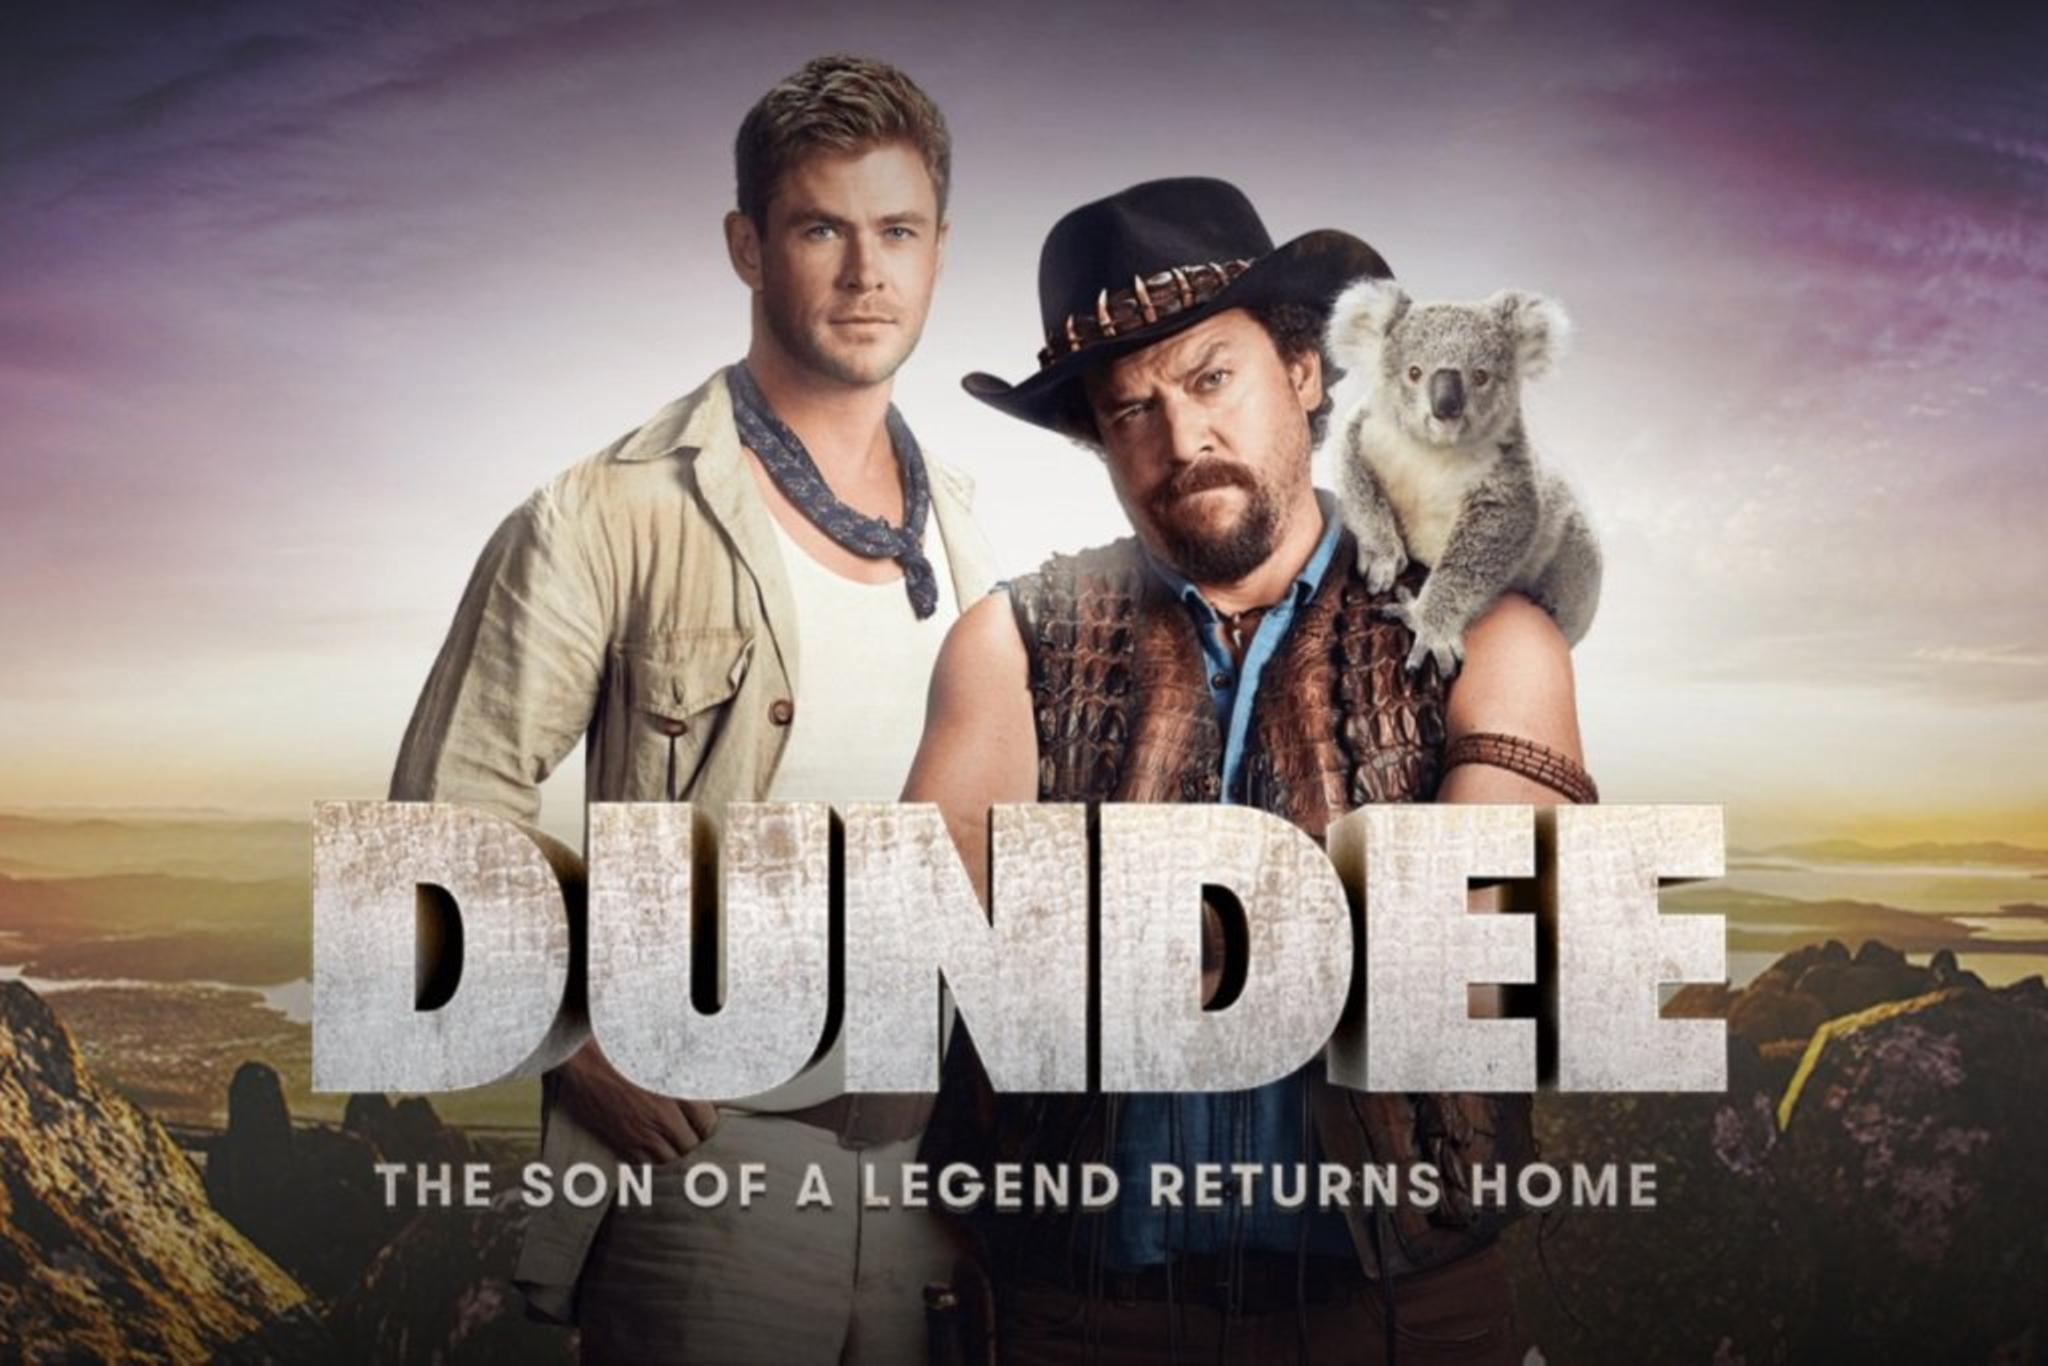 Crocodile-Dundee-Chris-Hemsworth-Danny-McBride-Poster